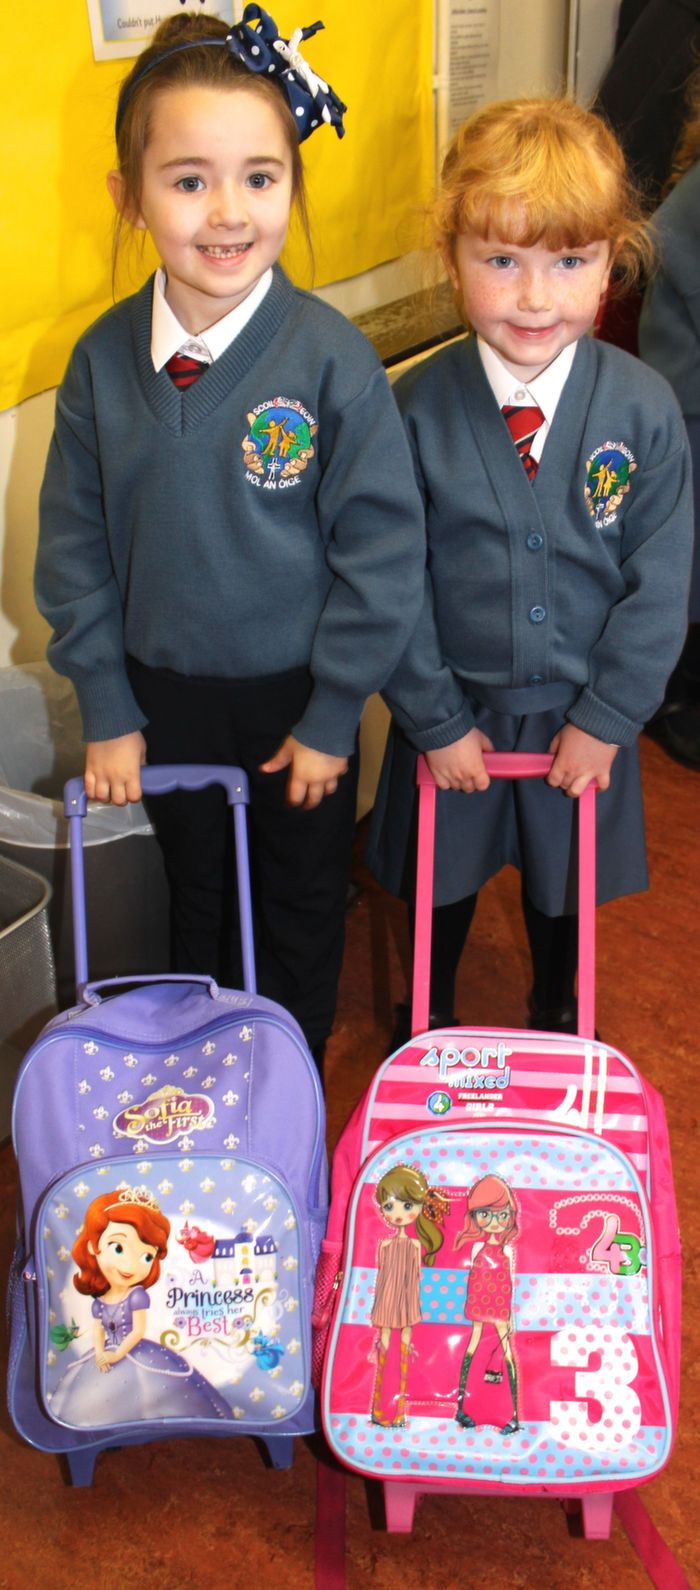 Starting their first day of school at Scoil Eoin were, Clowie O'Sullivan and Lucy Carey. Photo by Gavin O'Connor.